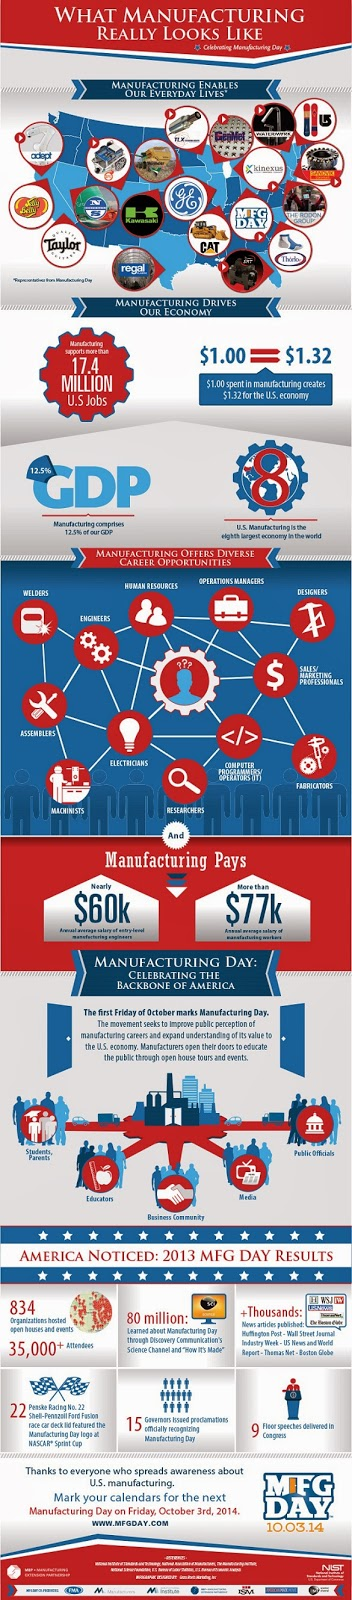 Infographic: What Manufacturing Really Looks Like - Celebrating Manufacturing Day